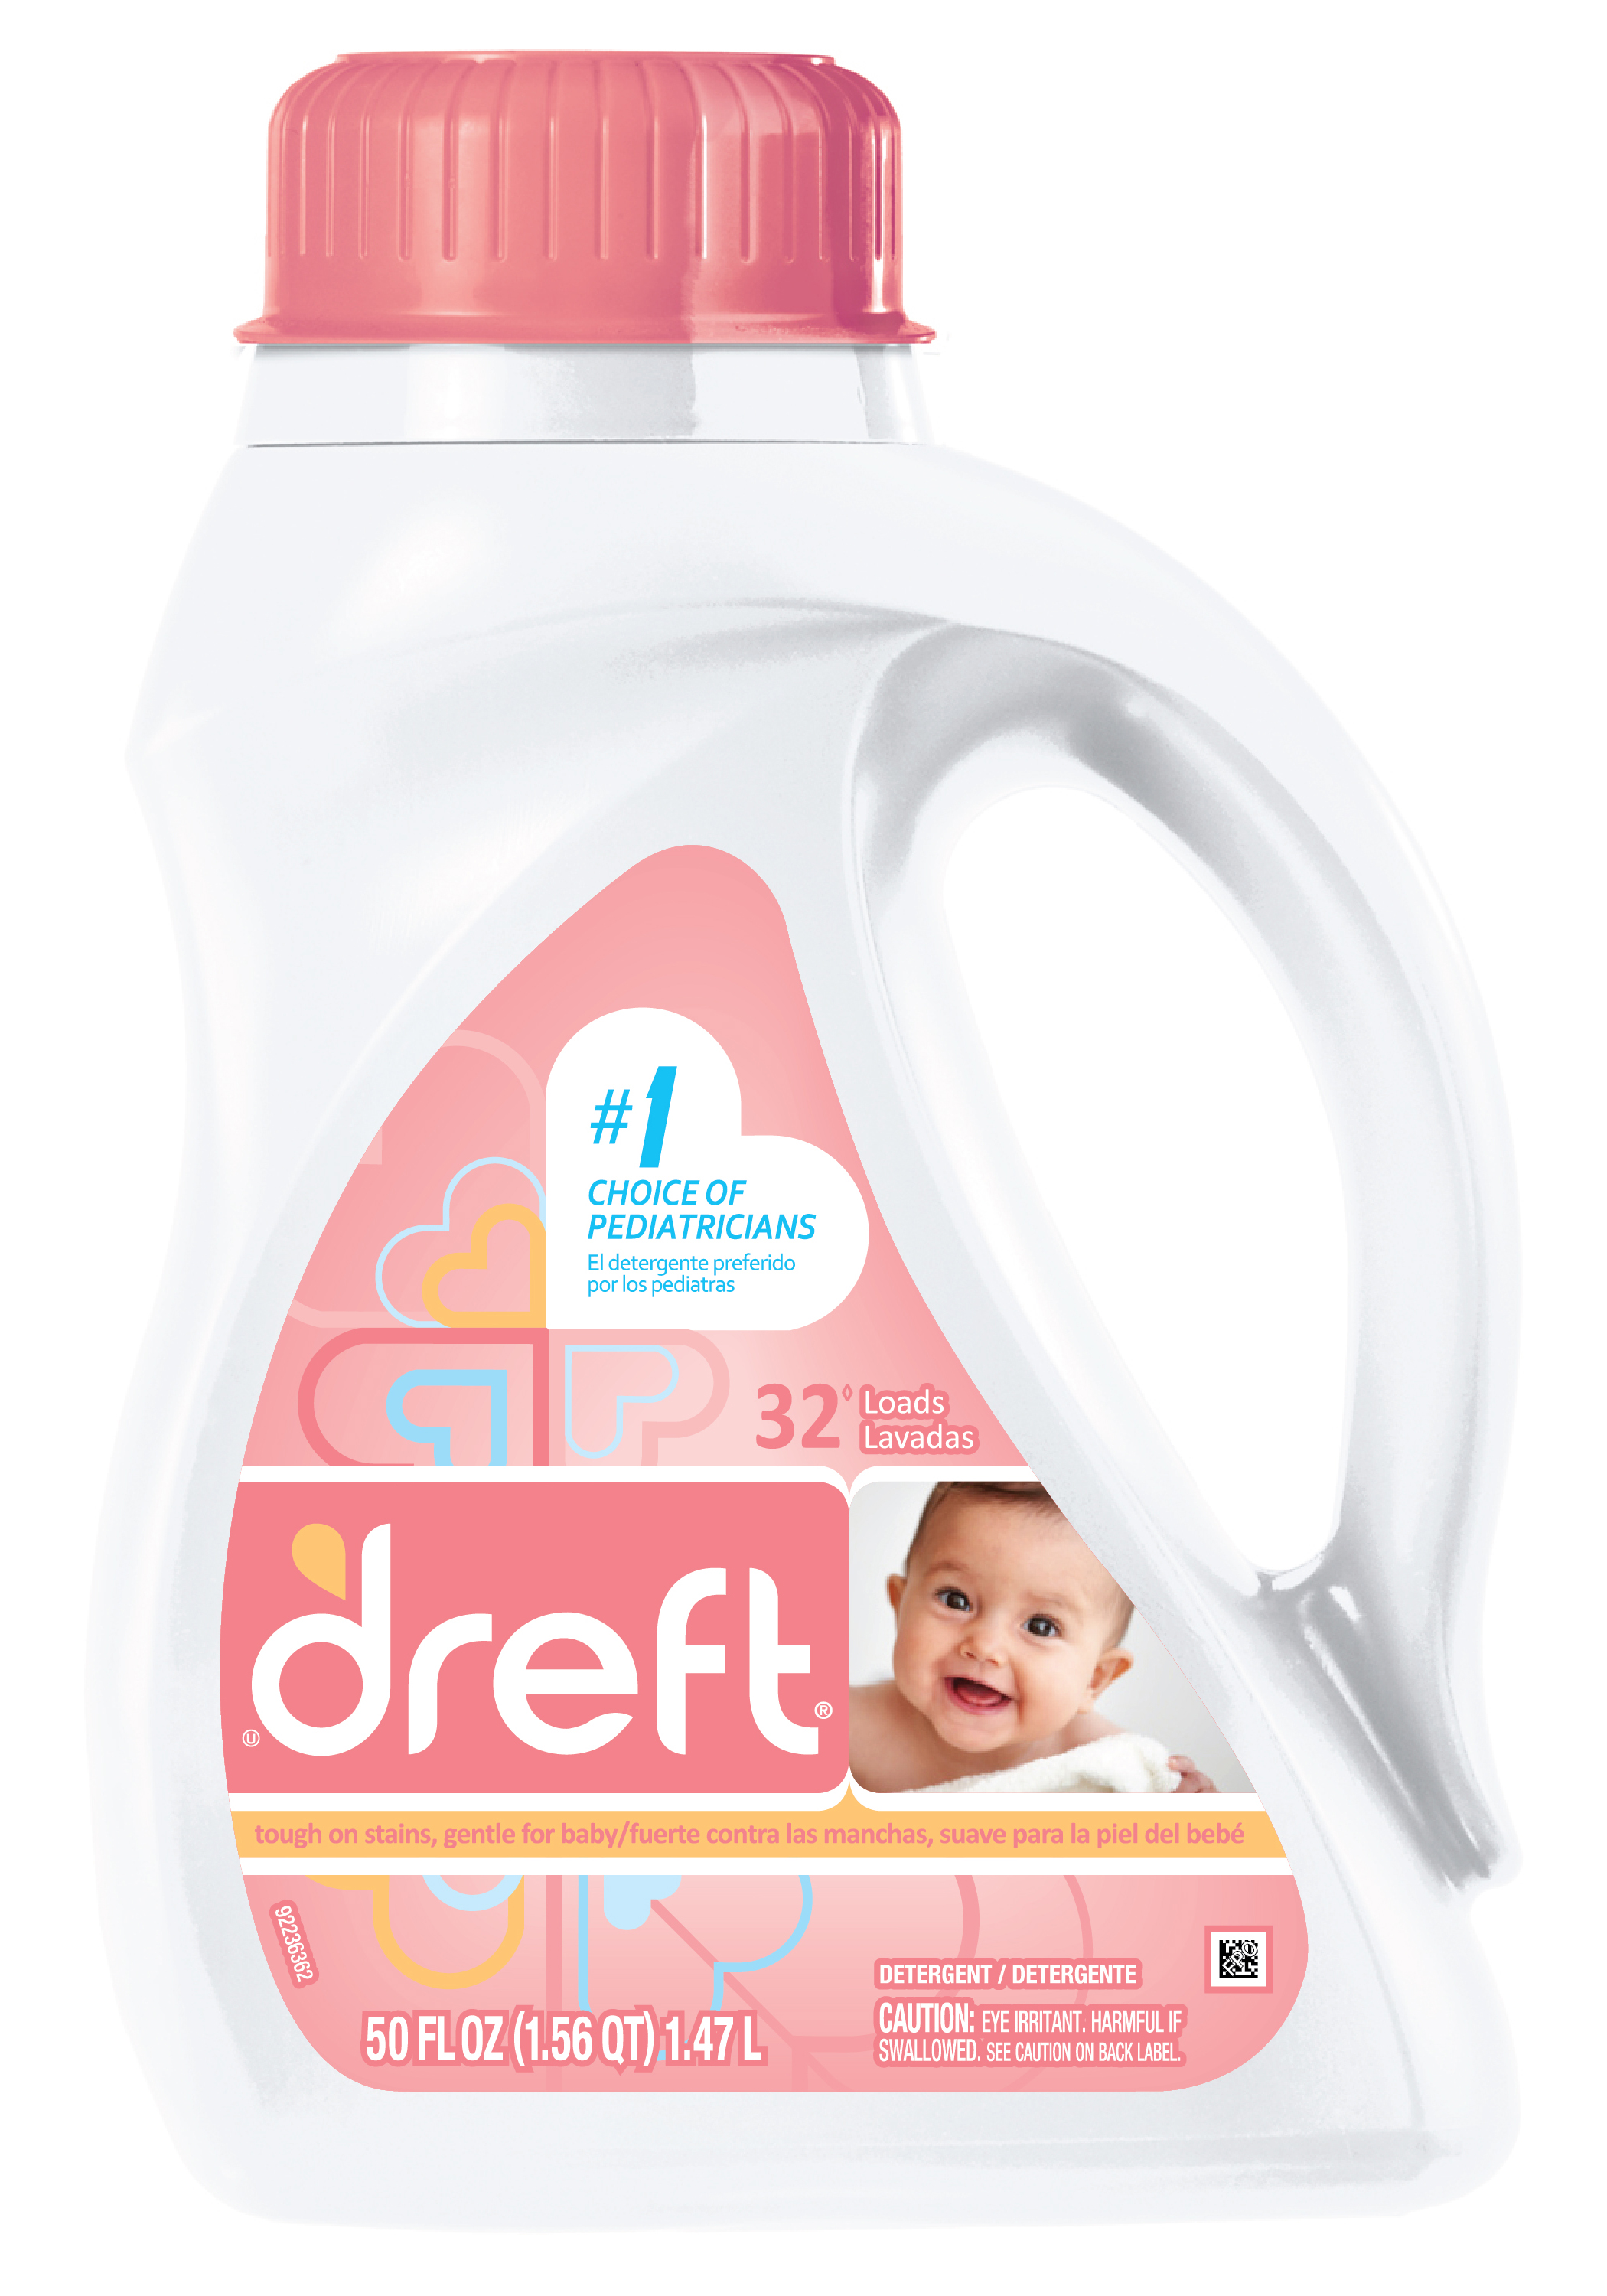 image about Dreft Printable Coupon titled Refreshing Printables* Dreft Detergent (excl. Stain Remover Demo